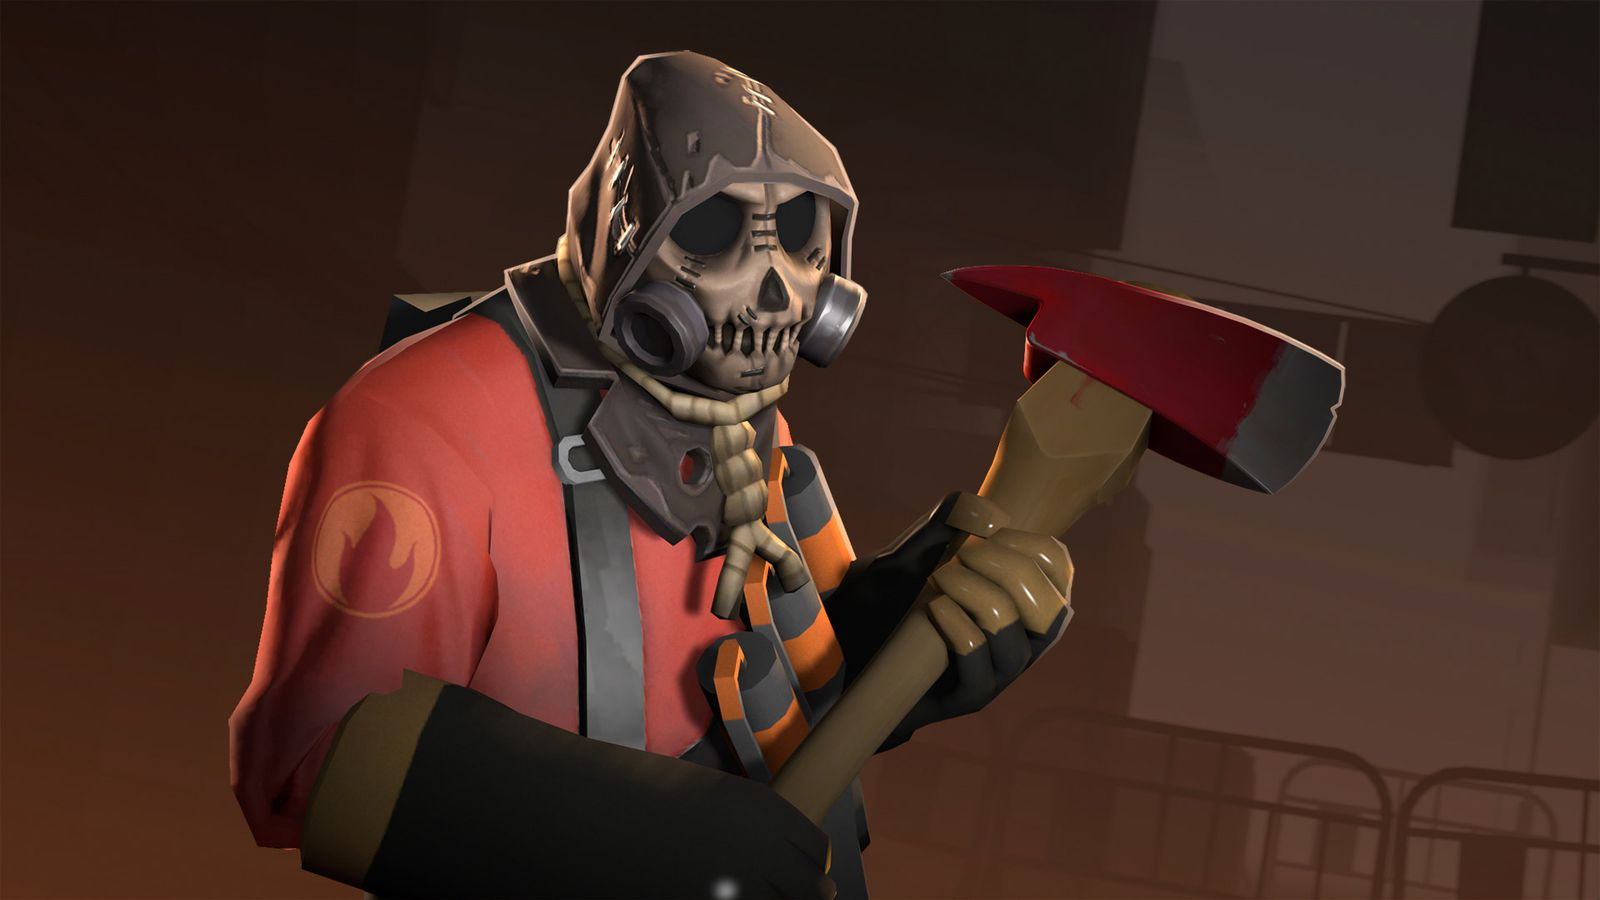 Anime Sniper Wallpaper Team Fortress 2 Is Getting A Bunch Of Batman Themed Items